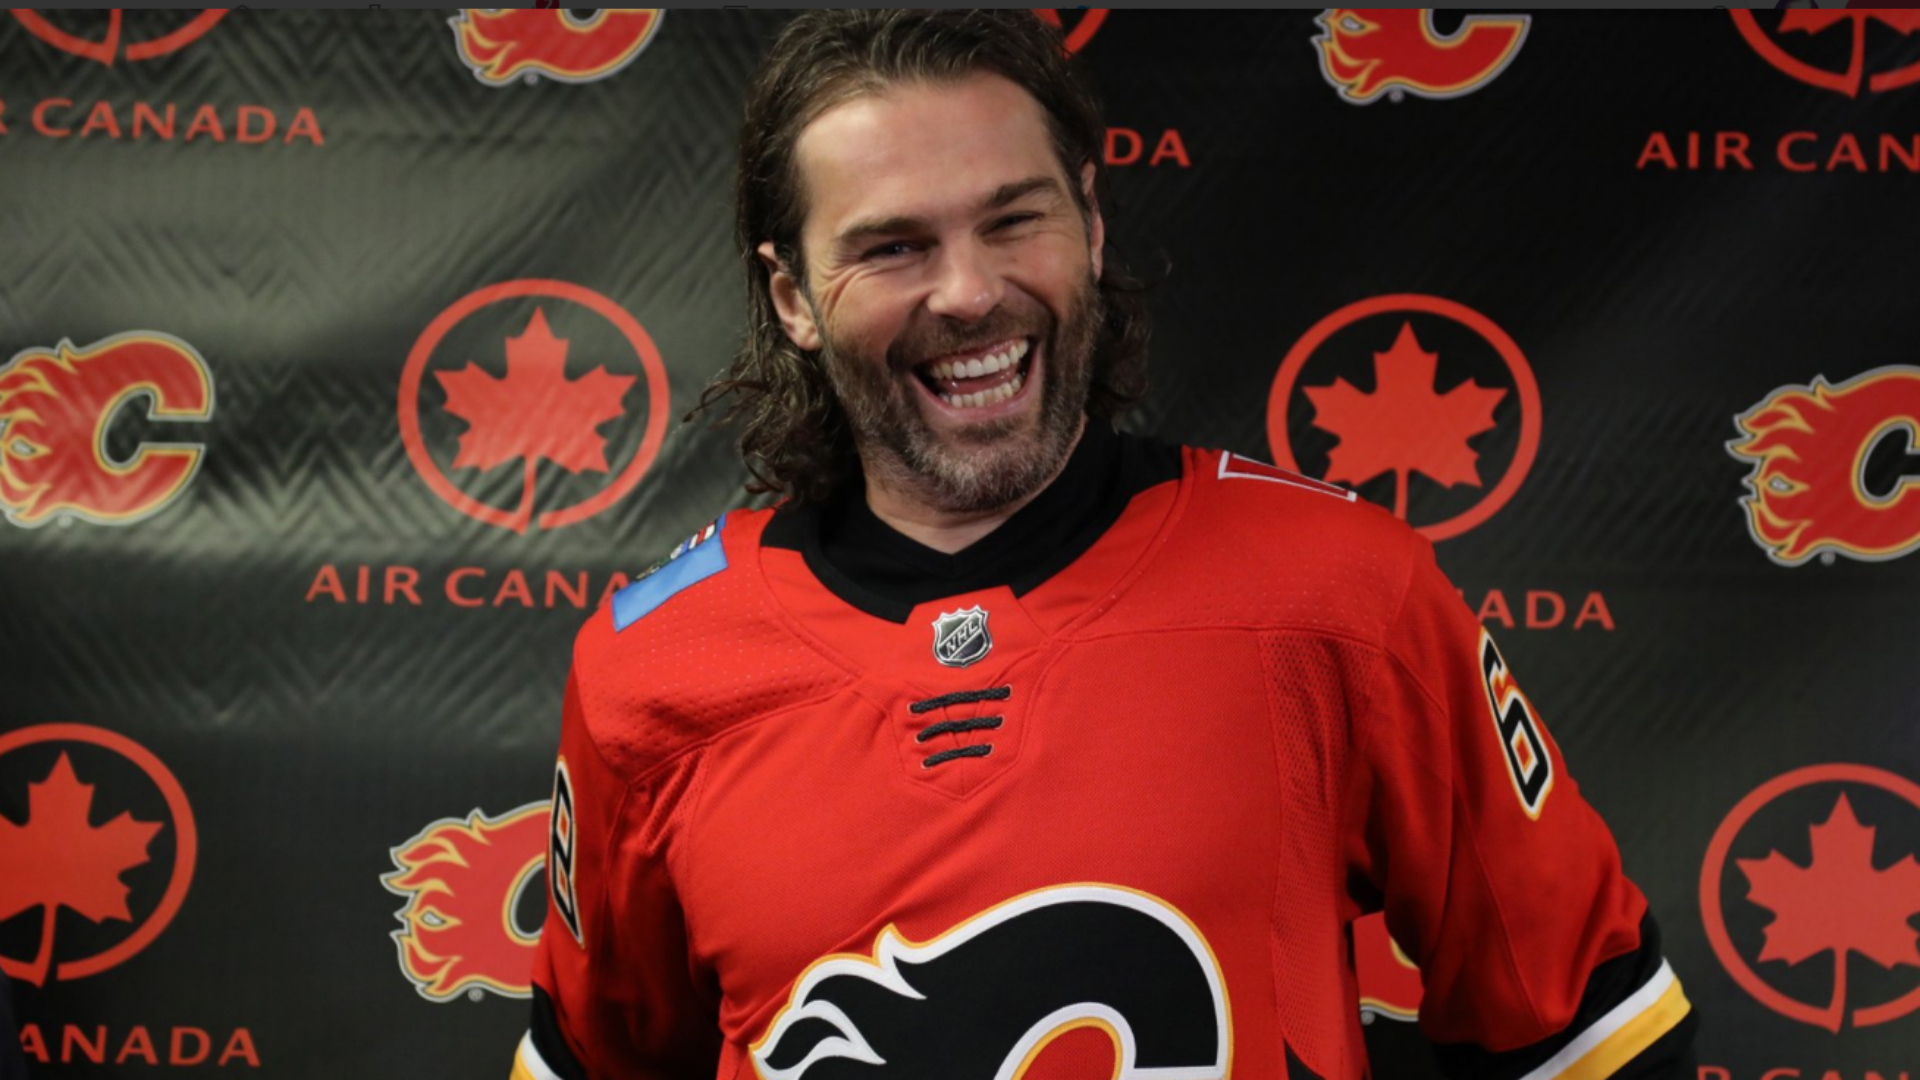 newest 24466 960ef Jagr joins Flames on one-year deal | HOCKEY News | Stadium Astro